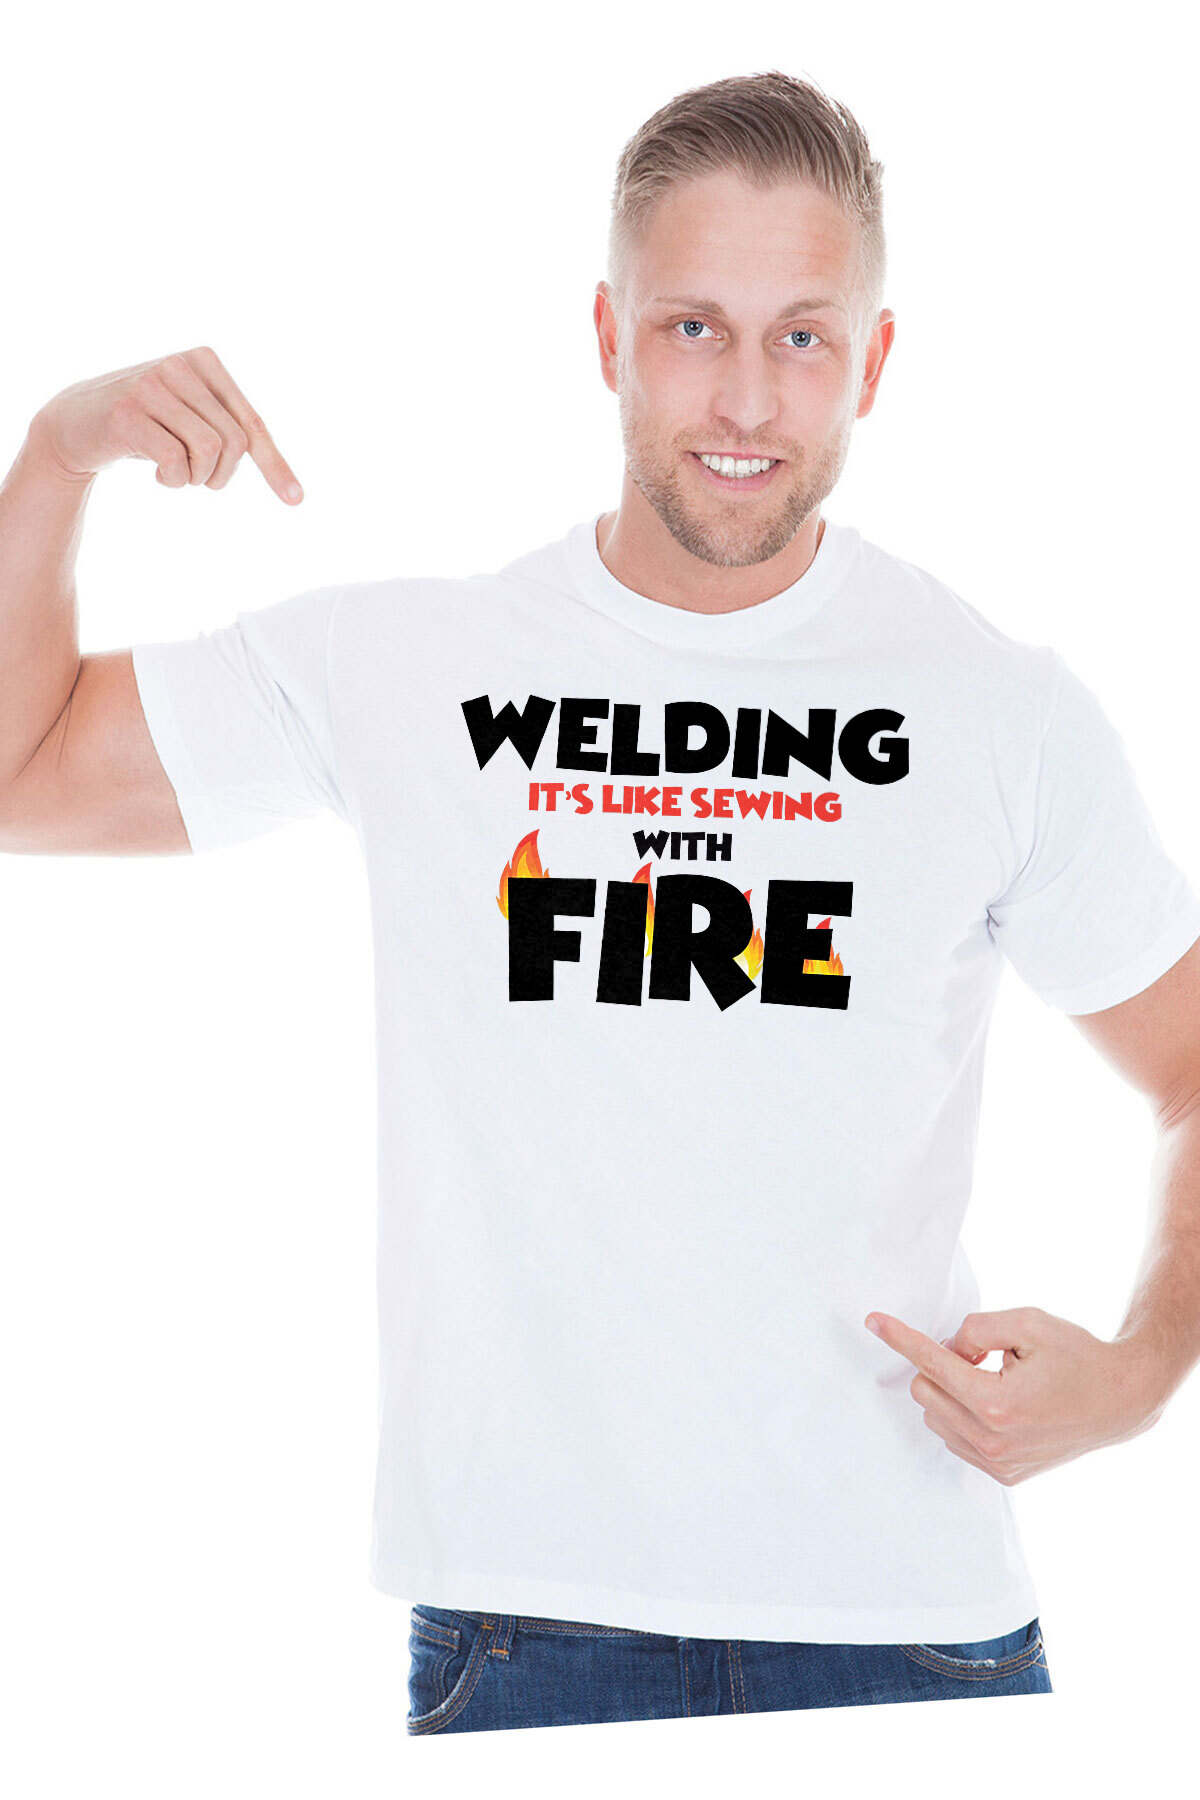 e26988f9 Welding is like sewing with fire - welding shirt - funny welder t-shirt